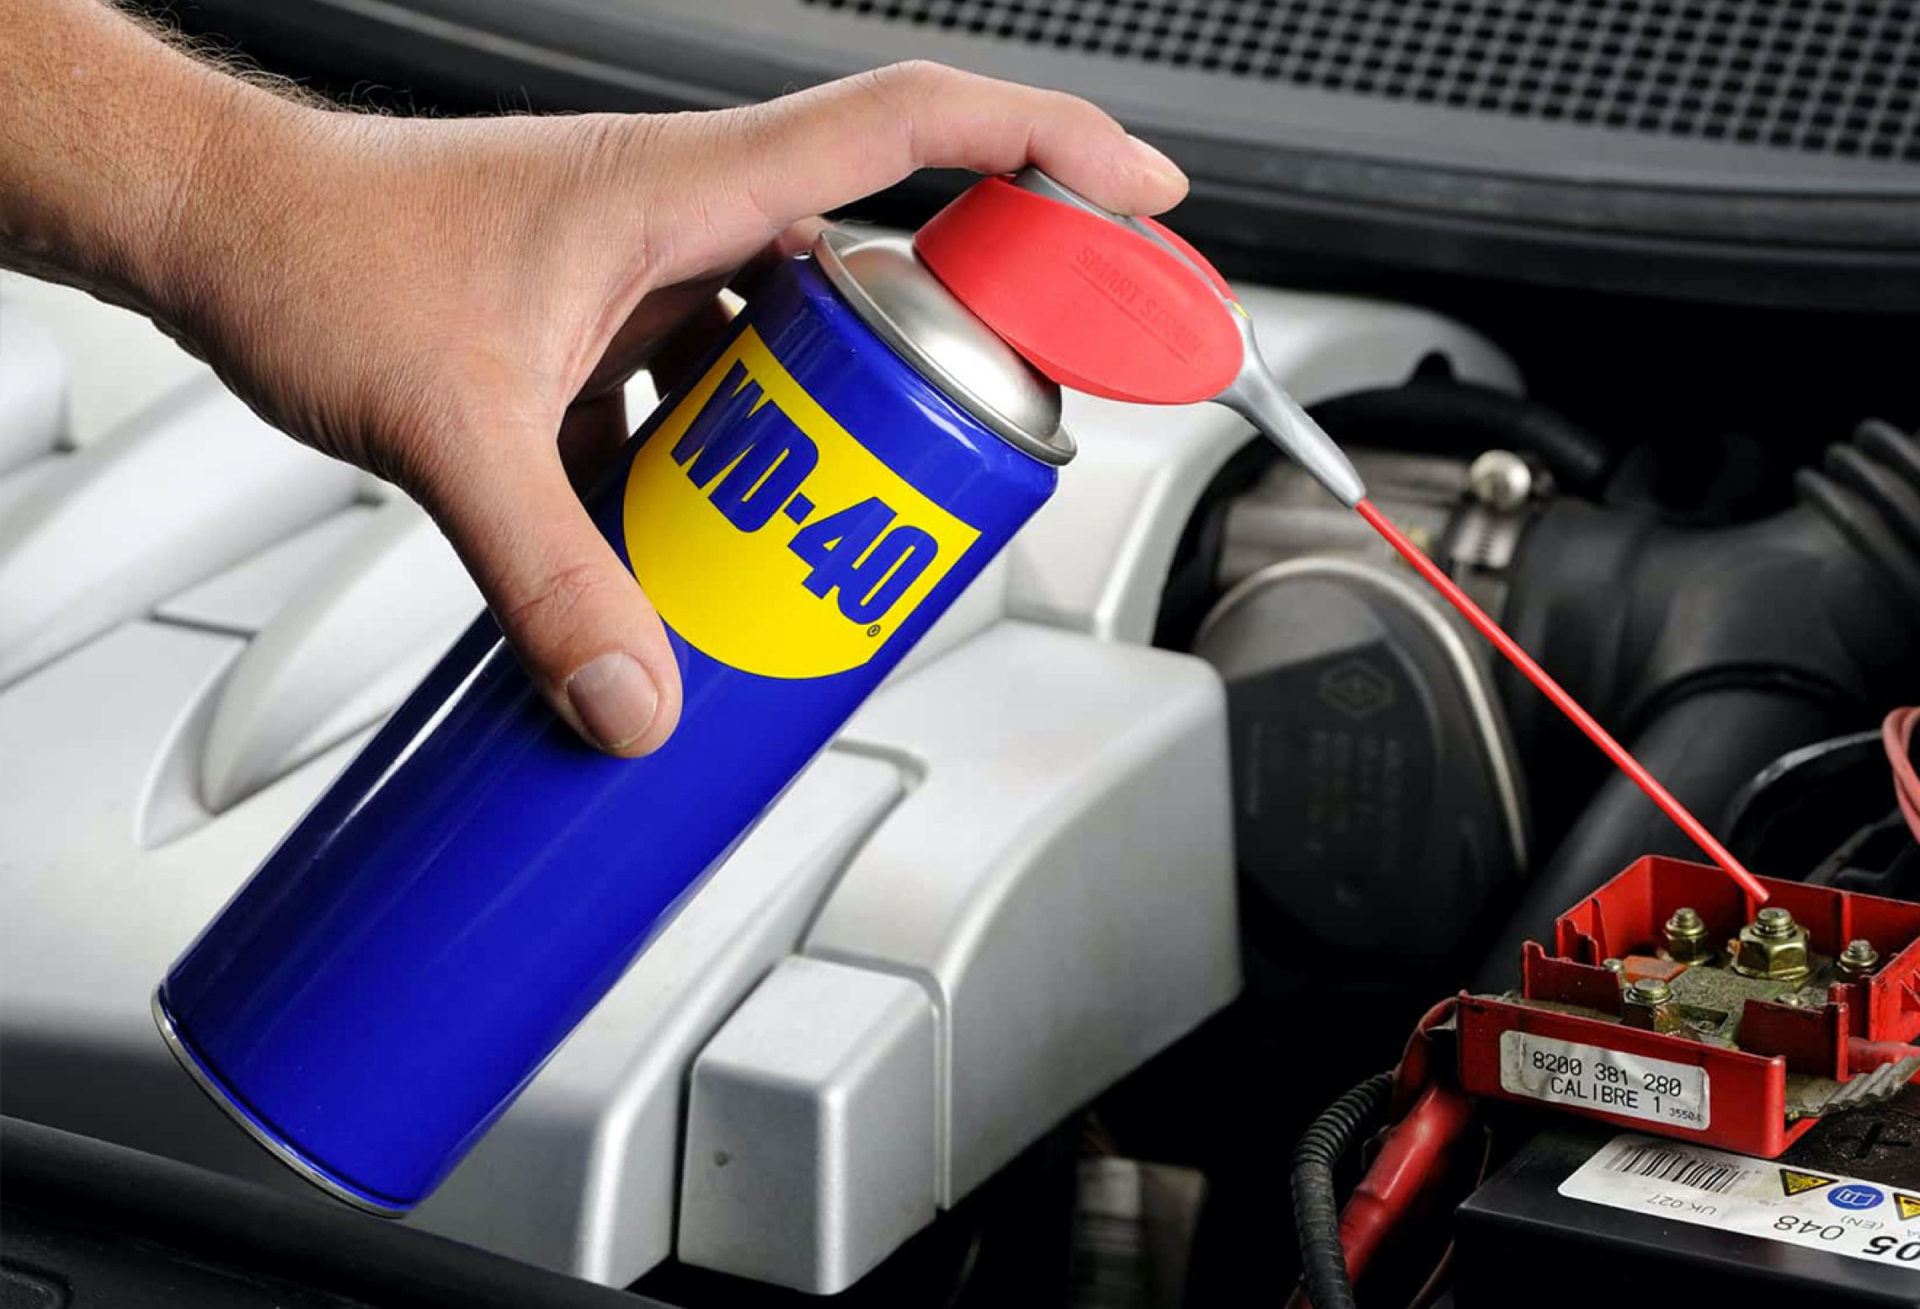 CaseStudy WD40 Image1 | A hand applying WD-40 from a can to a mechanical component of some kind.